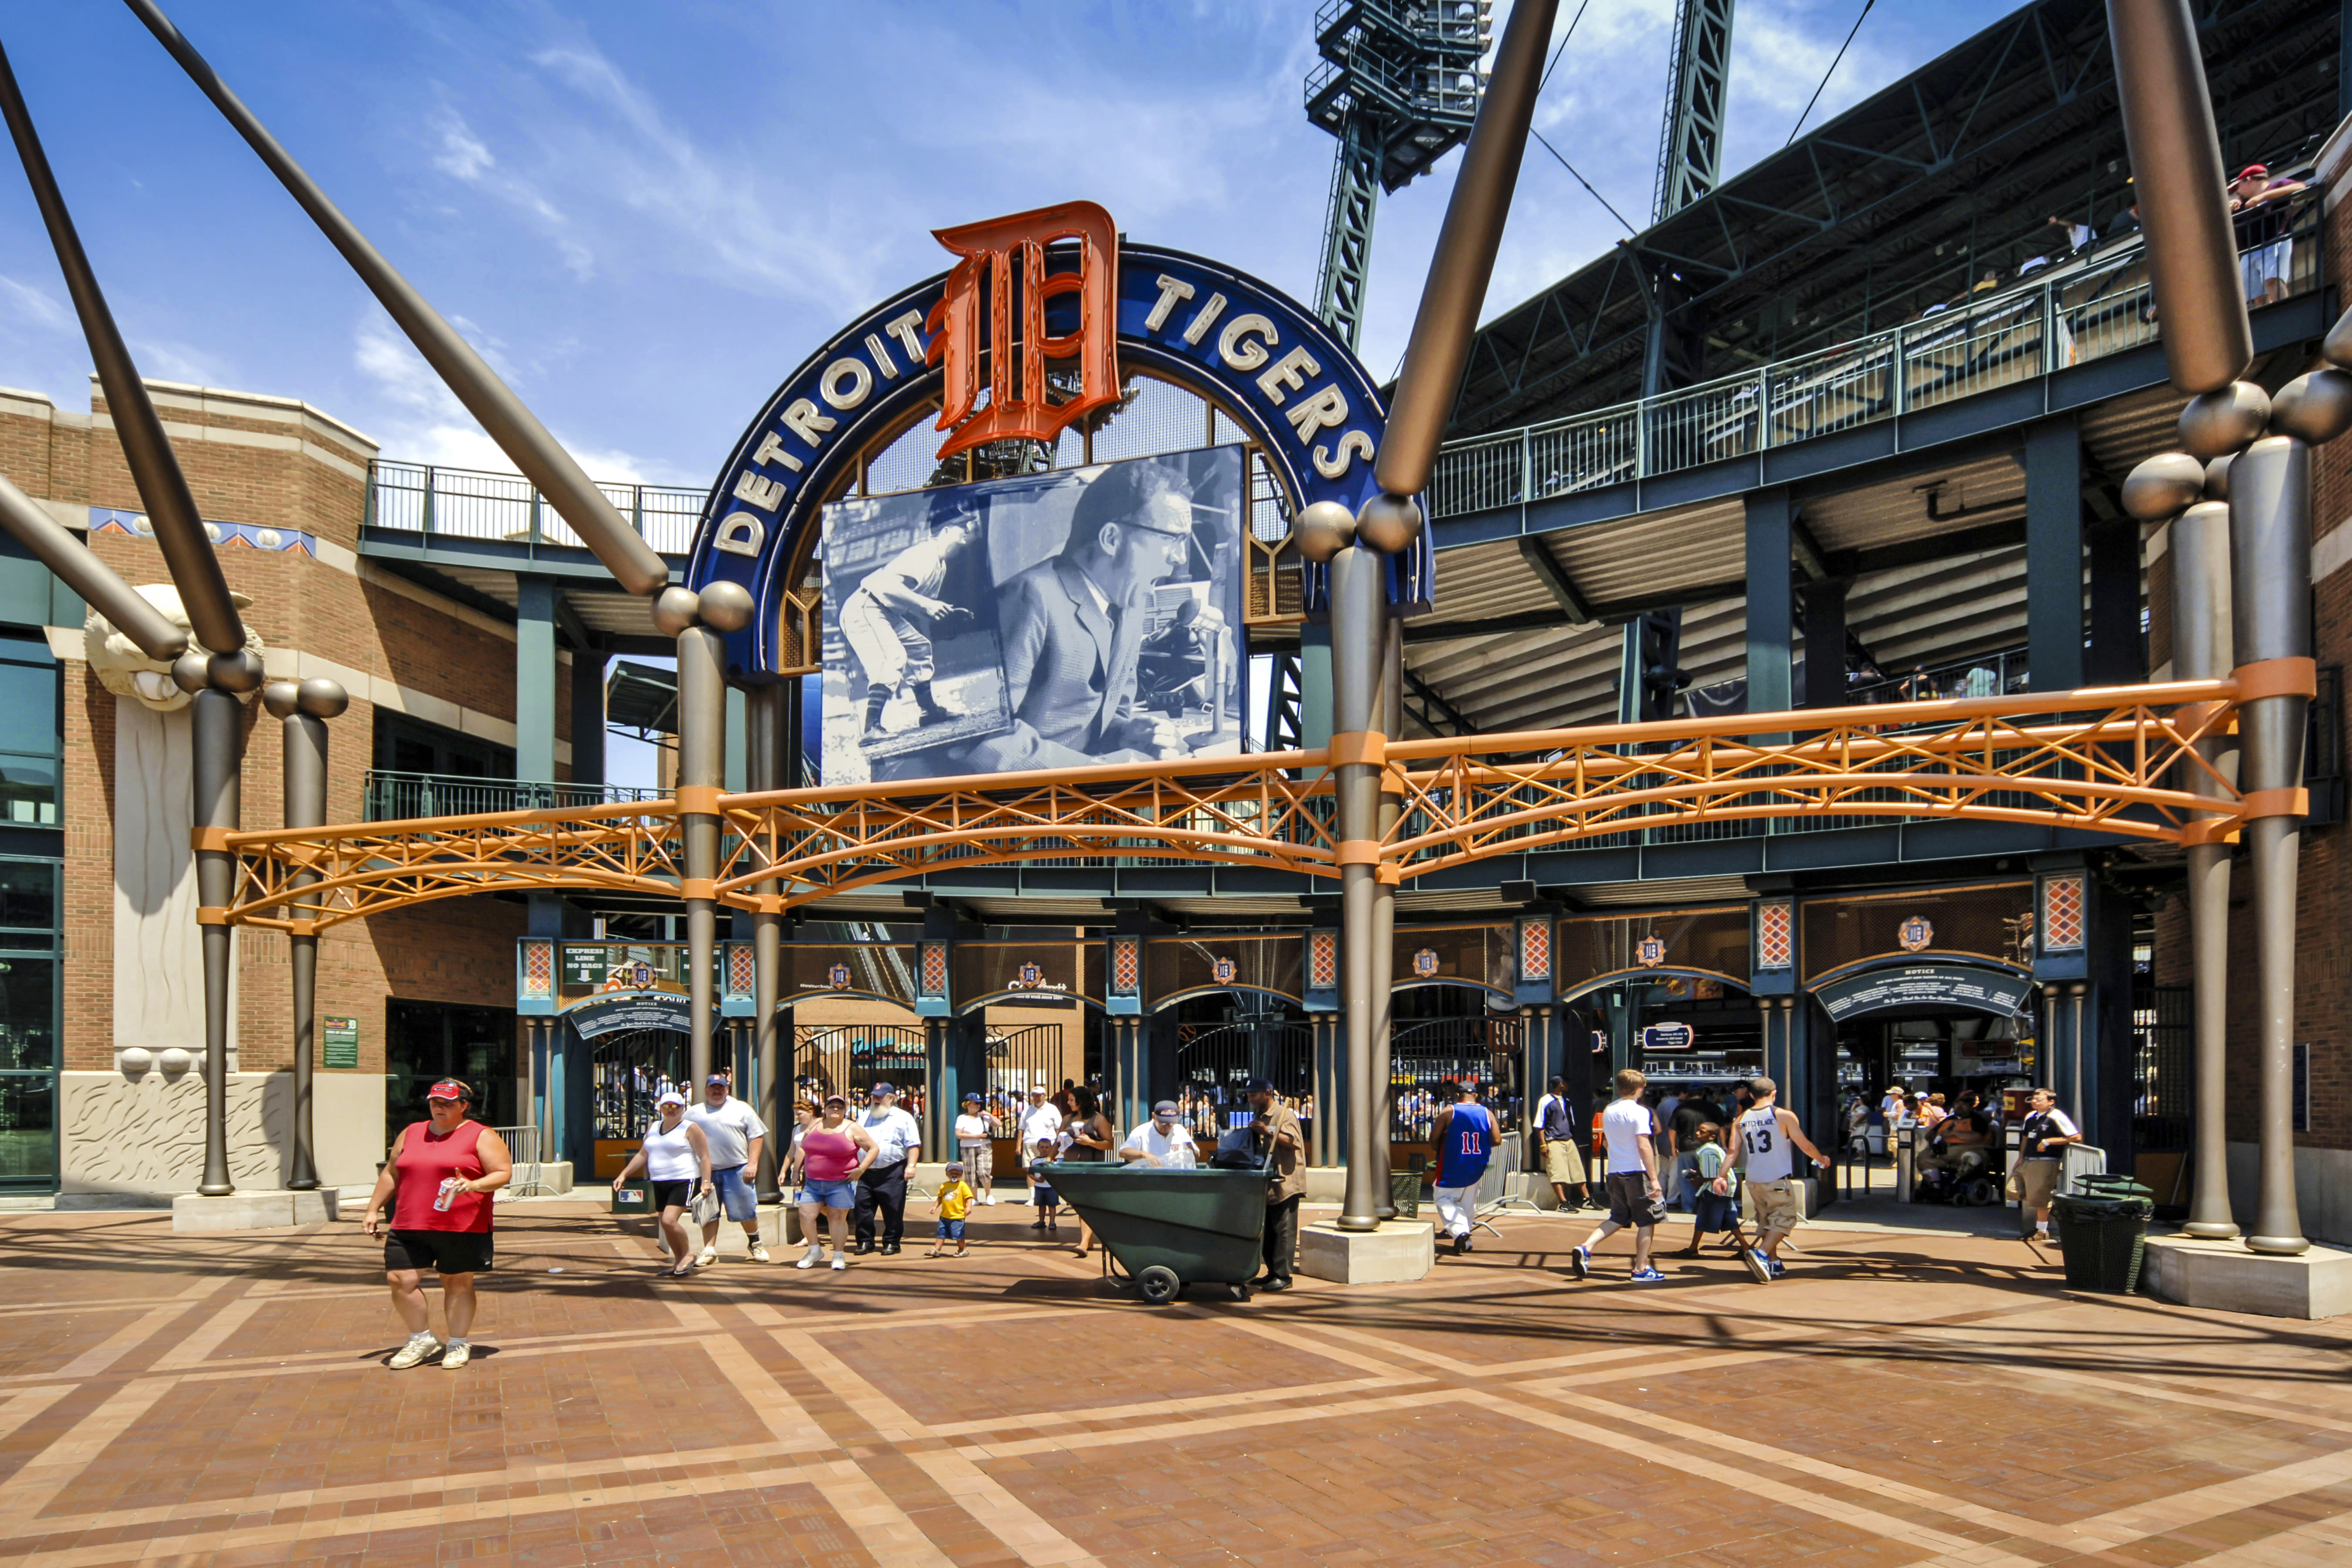 Tigers minor leaguer dies three days after sustaining injuries in skateboarding - Yahoo Sports